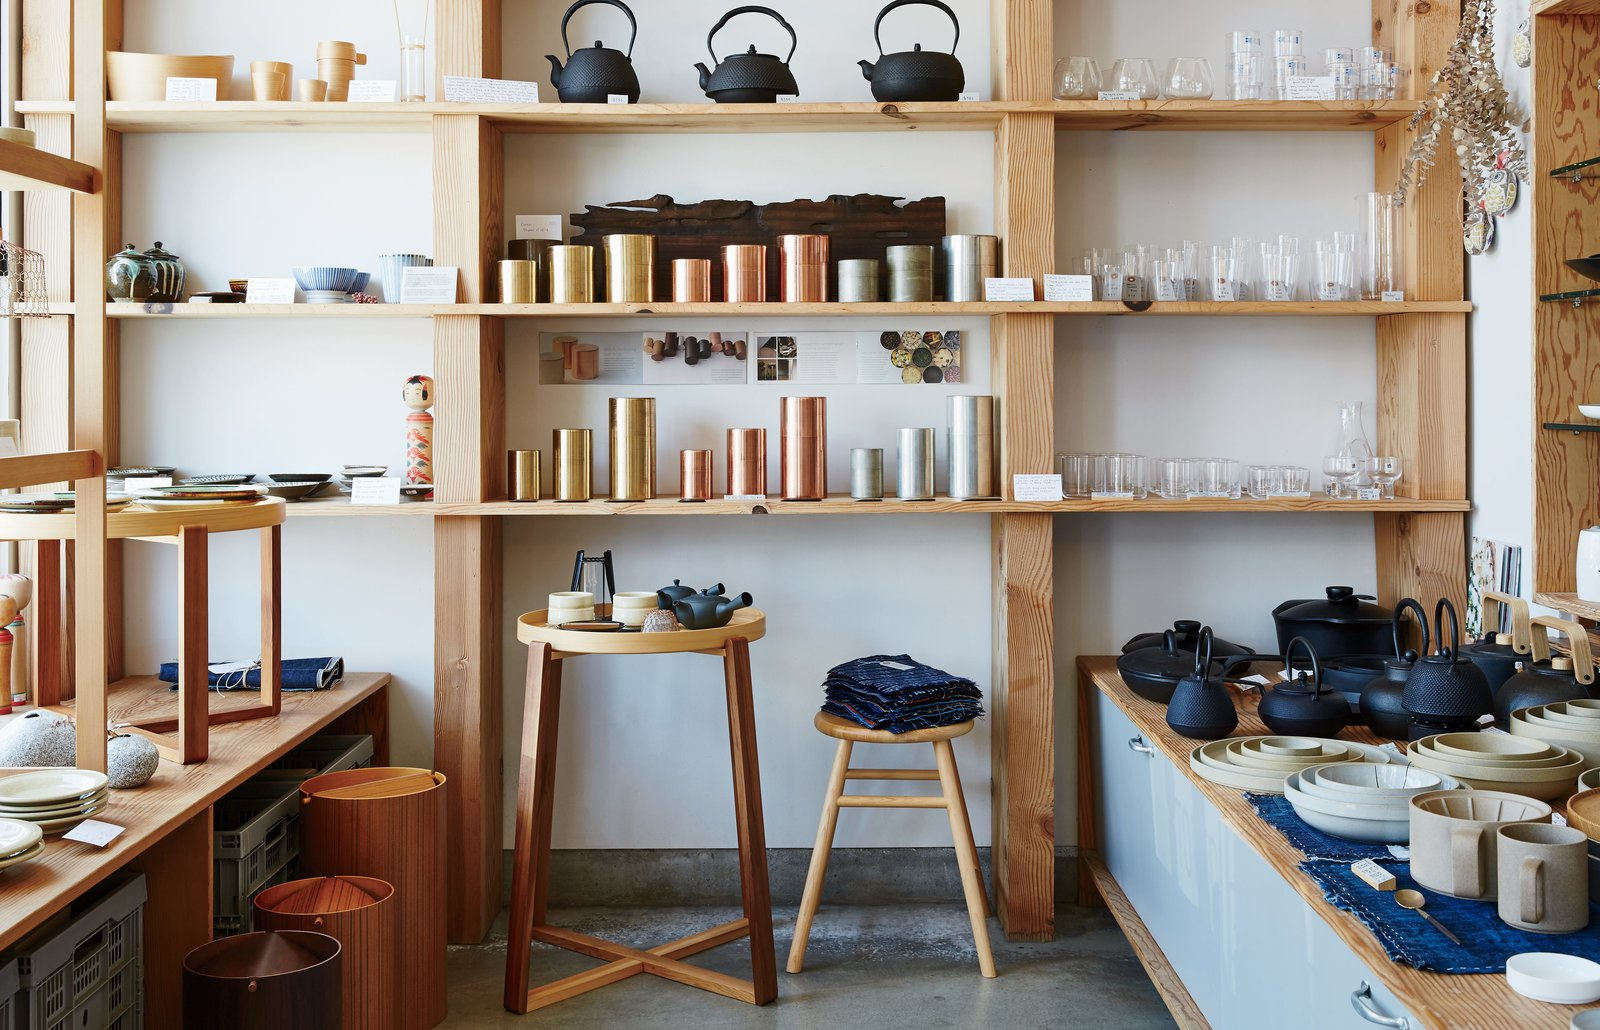 Keiko and Taku Shinomoto have two simple rules for their store: that the items come from Japan and that they have been well made by artisans. Just off busy Abbot Kinney Boulevard in Venice, California, the shop carries homewares such as Kaikado metal tea canisters. A Cute Mom-and-Pop Shop in L.A. Showcases the Latest Japanese Design - Photo 1 of 6